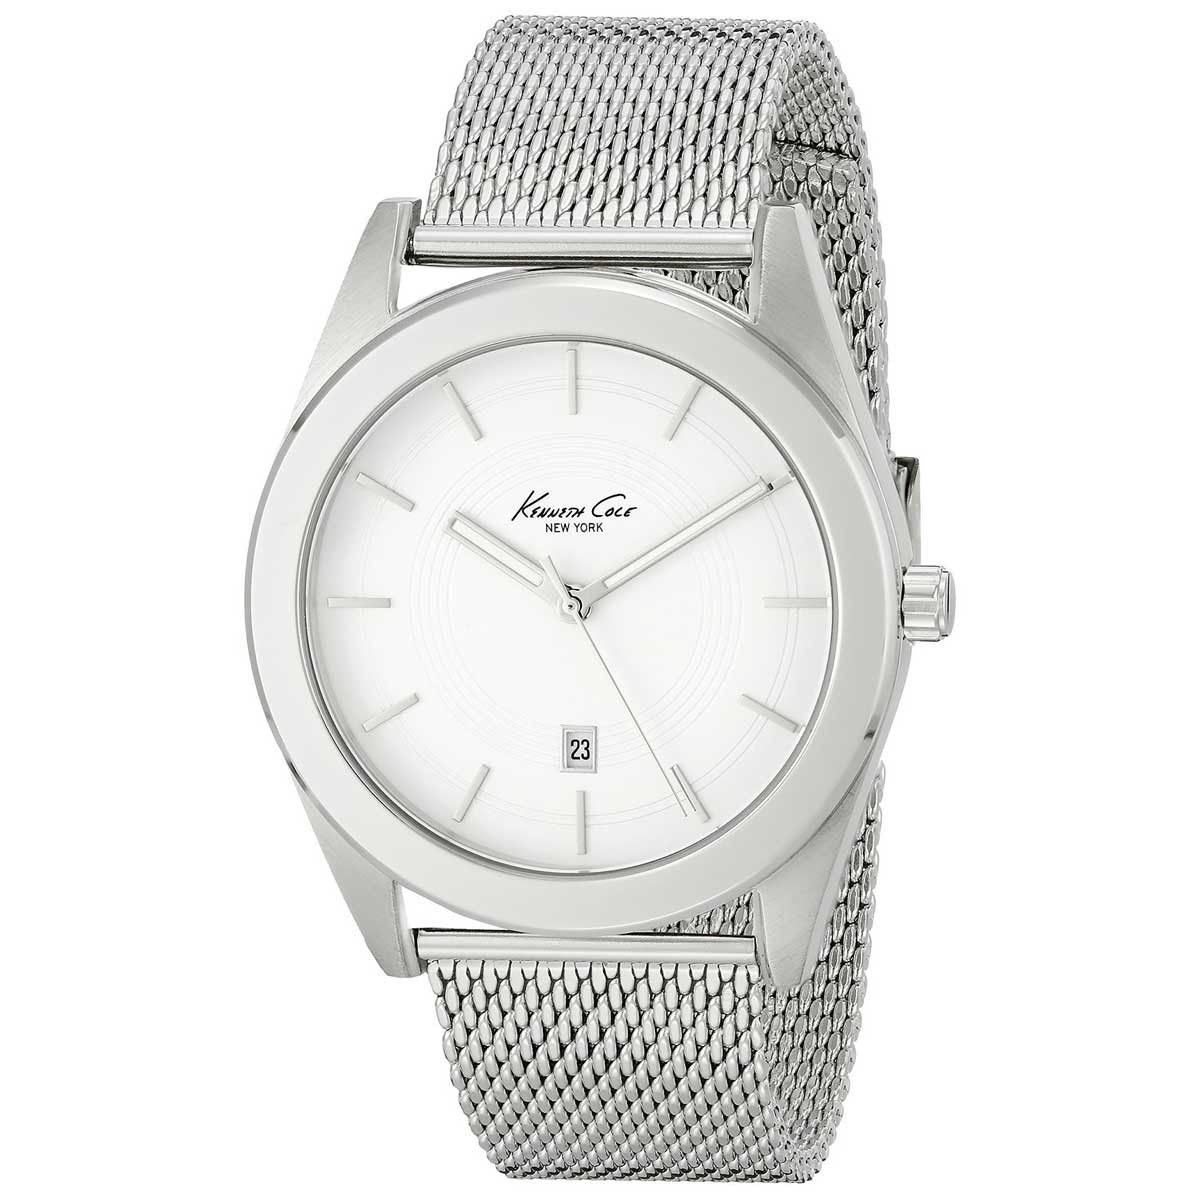 Kenneth Cole KC9370 Men's Classic New York Silver Dial Stainless Steel Mesh Bracelet Watch